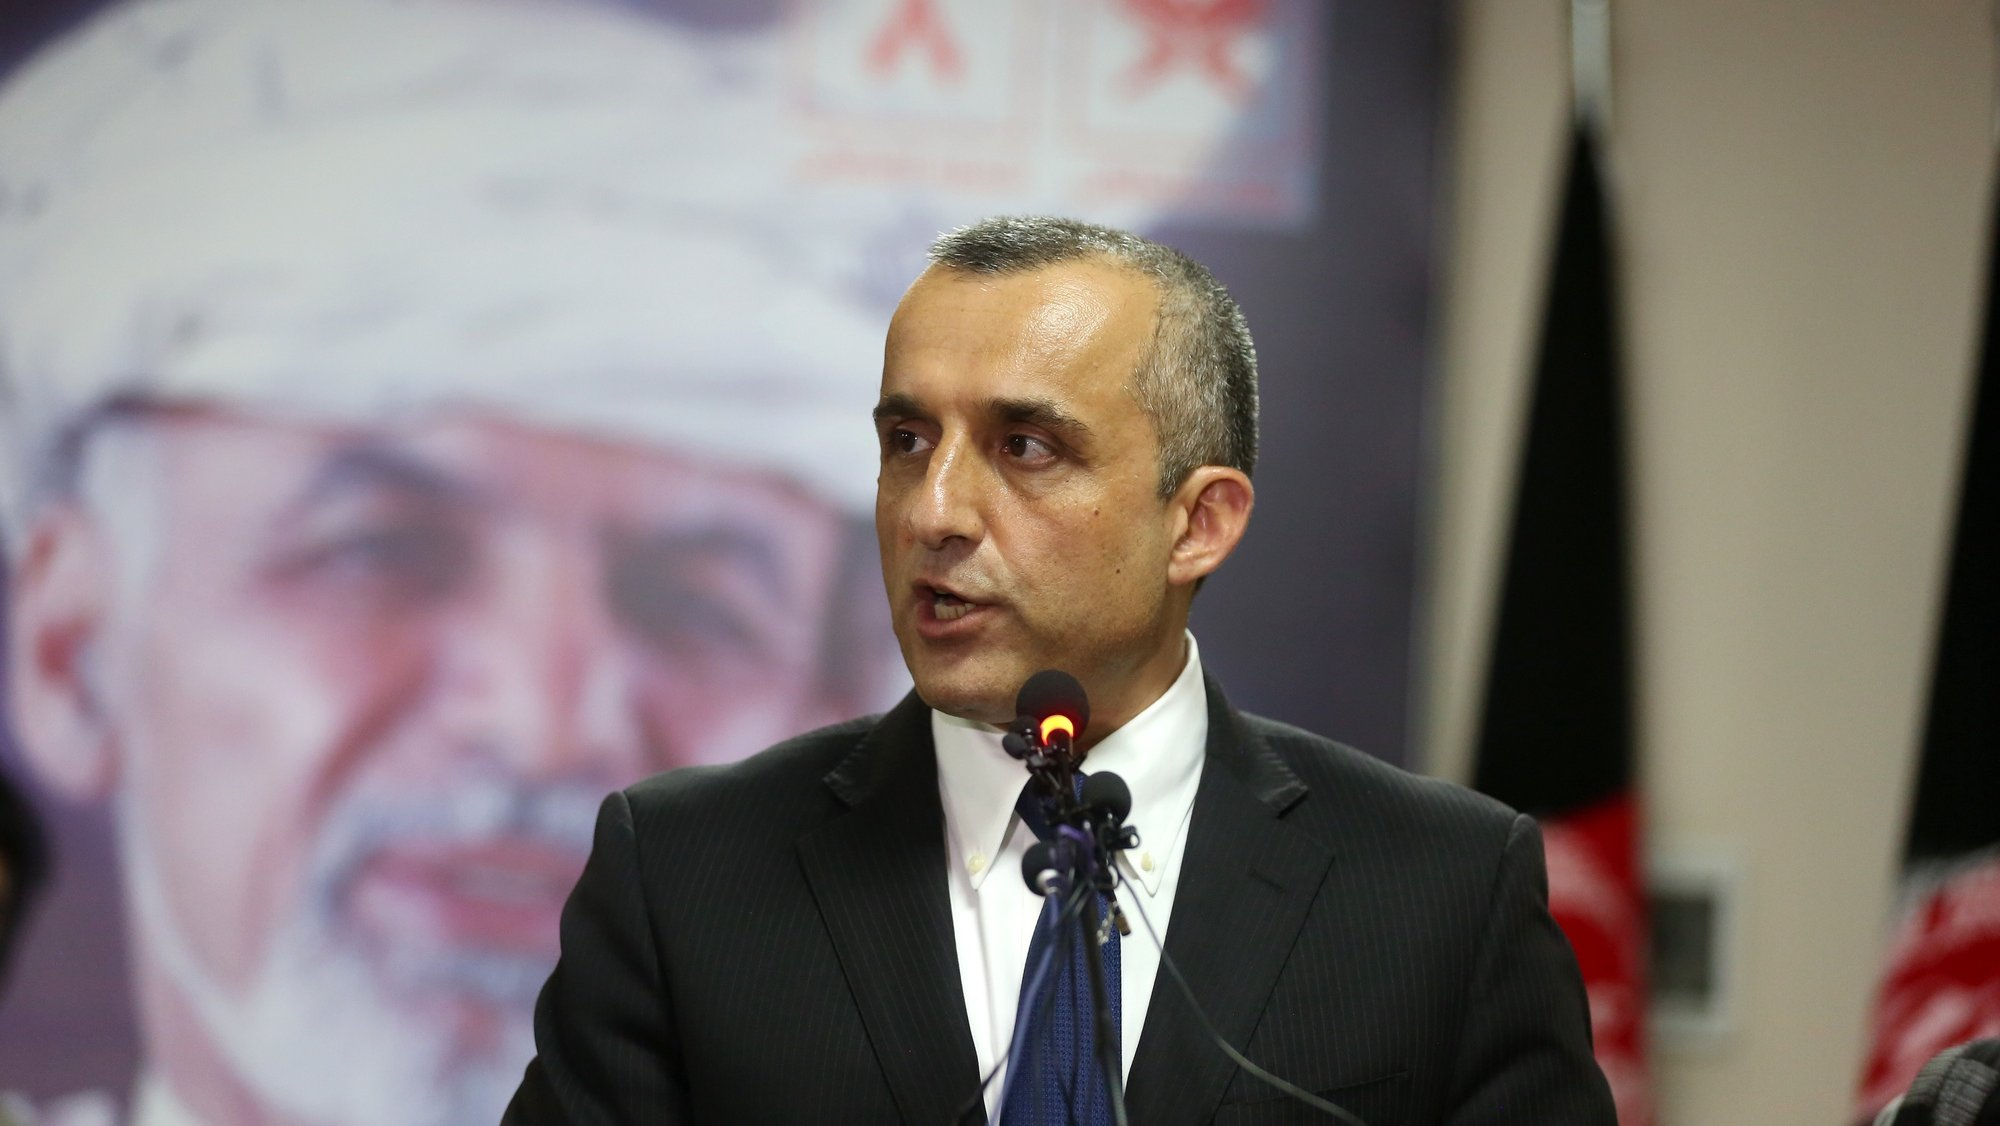 epa07882828 Afghanistan presidential candidate Ashraf Ghani's First Vice President Amrullah Saleh from the State Building electoral team briefs journalists about the outcomes of the presidential election during a press conference in Kabul, Afghanistan, 30 September 2019.  EPA/JAWAD JALALI